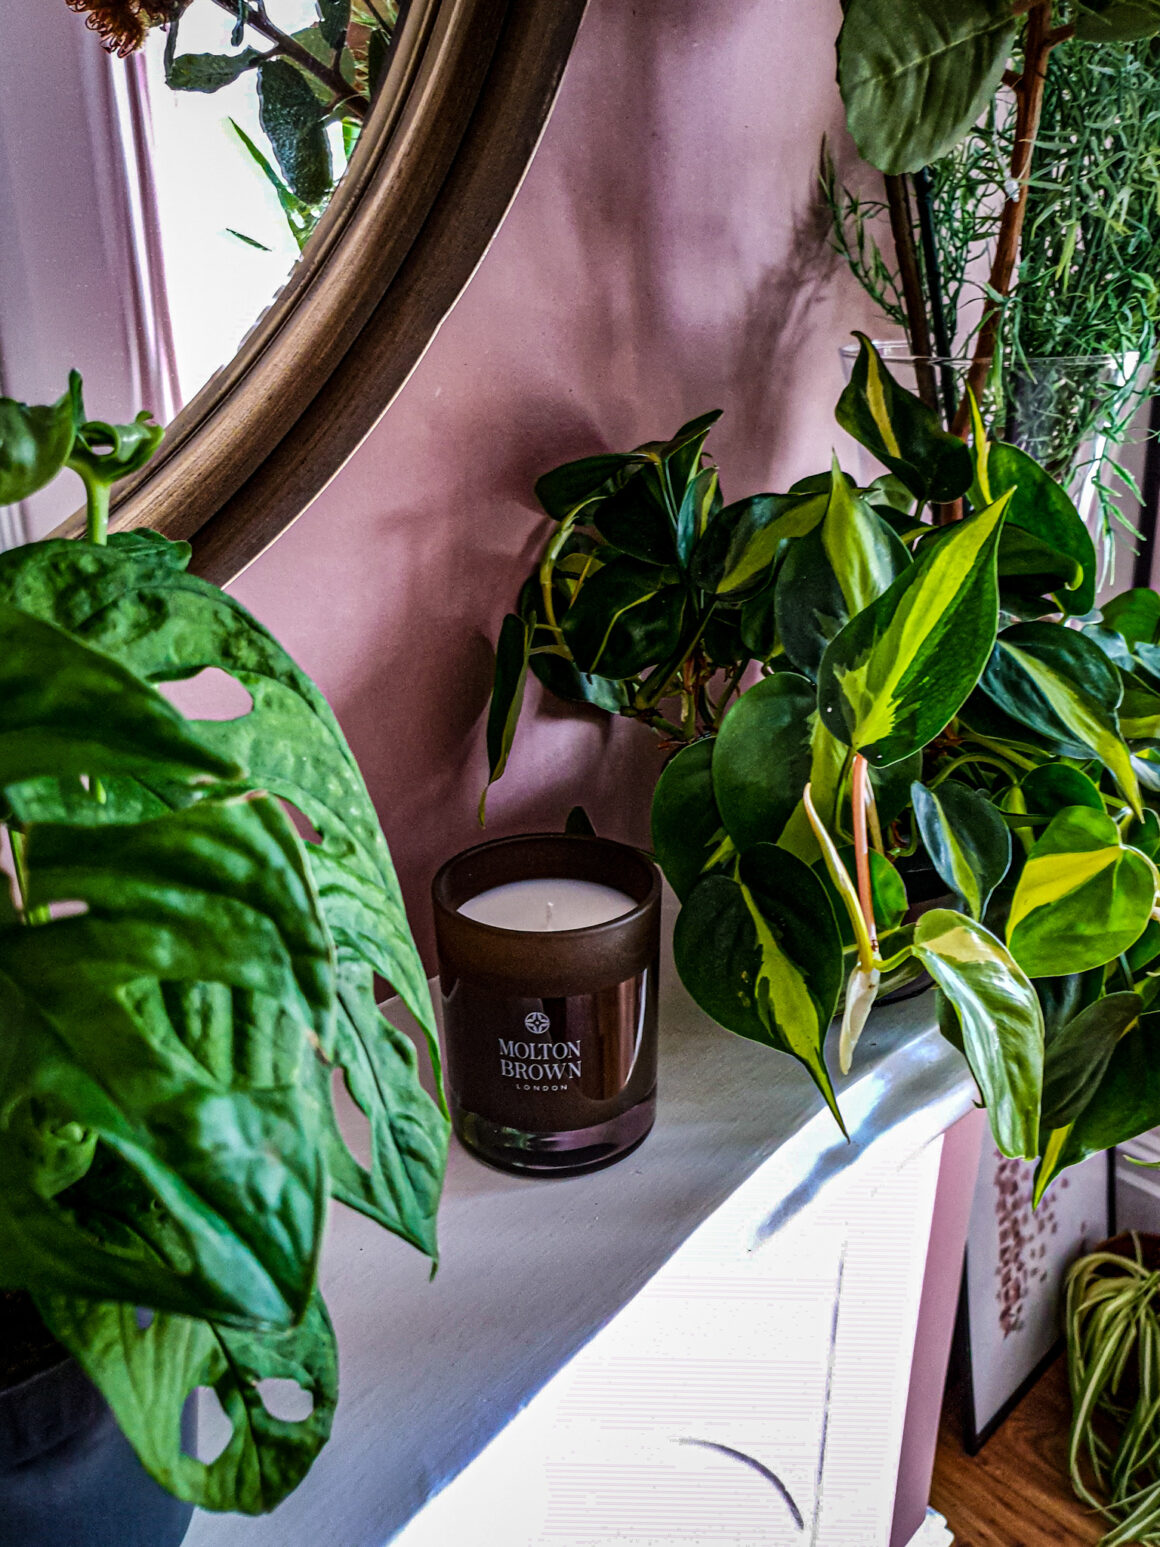 At Home with Molton Brown Tobacco Absolute candle